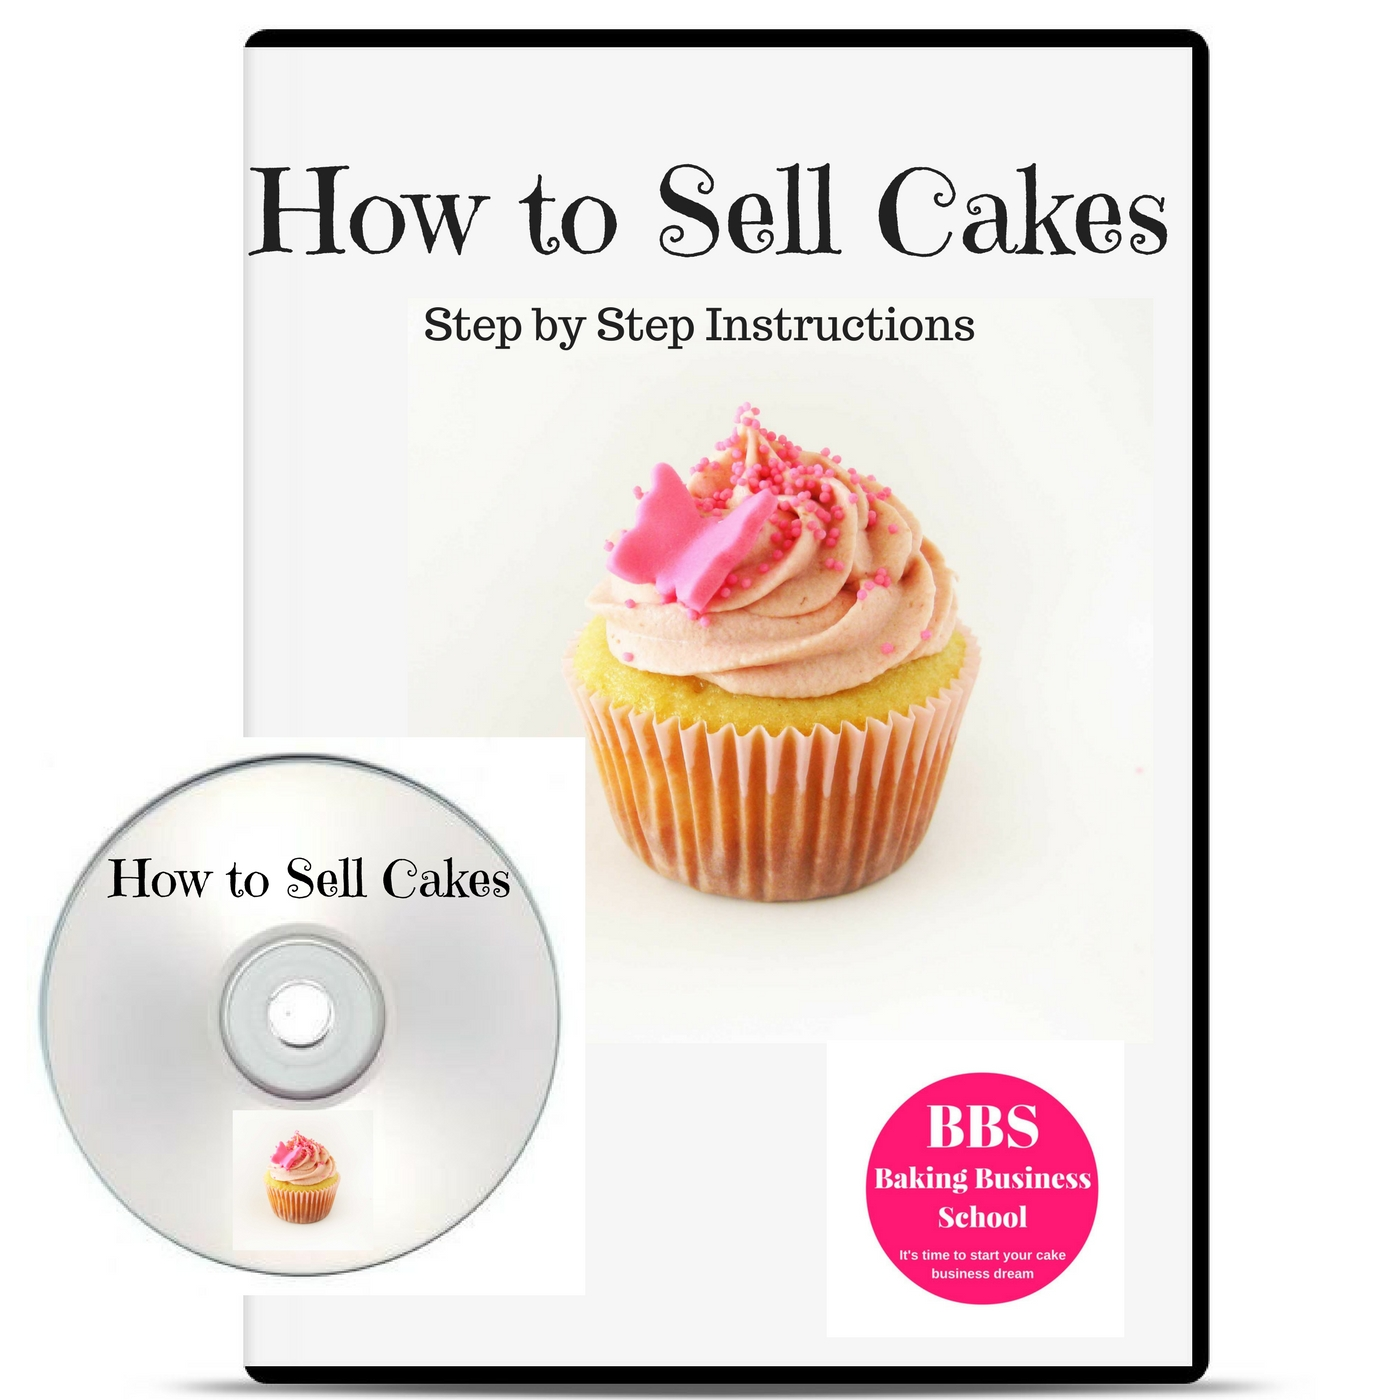 How to sell cakes, Baking Business School